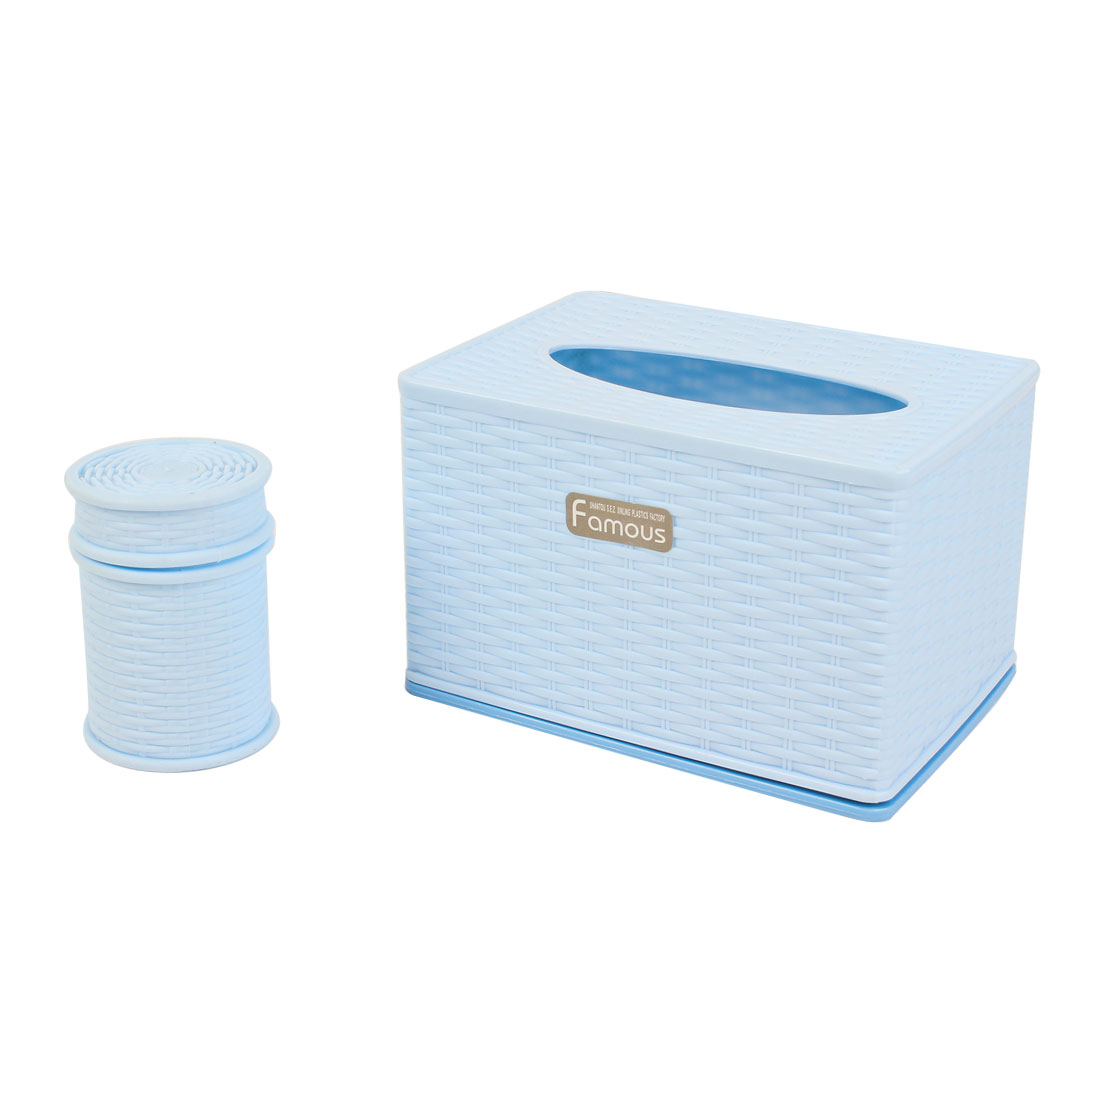 Houshold Blue Rectangle Detachable Lid Tissue Box Case + Toothpick Holder